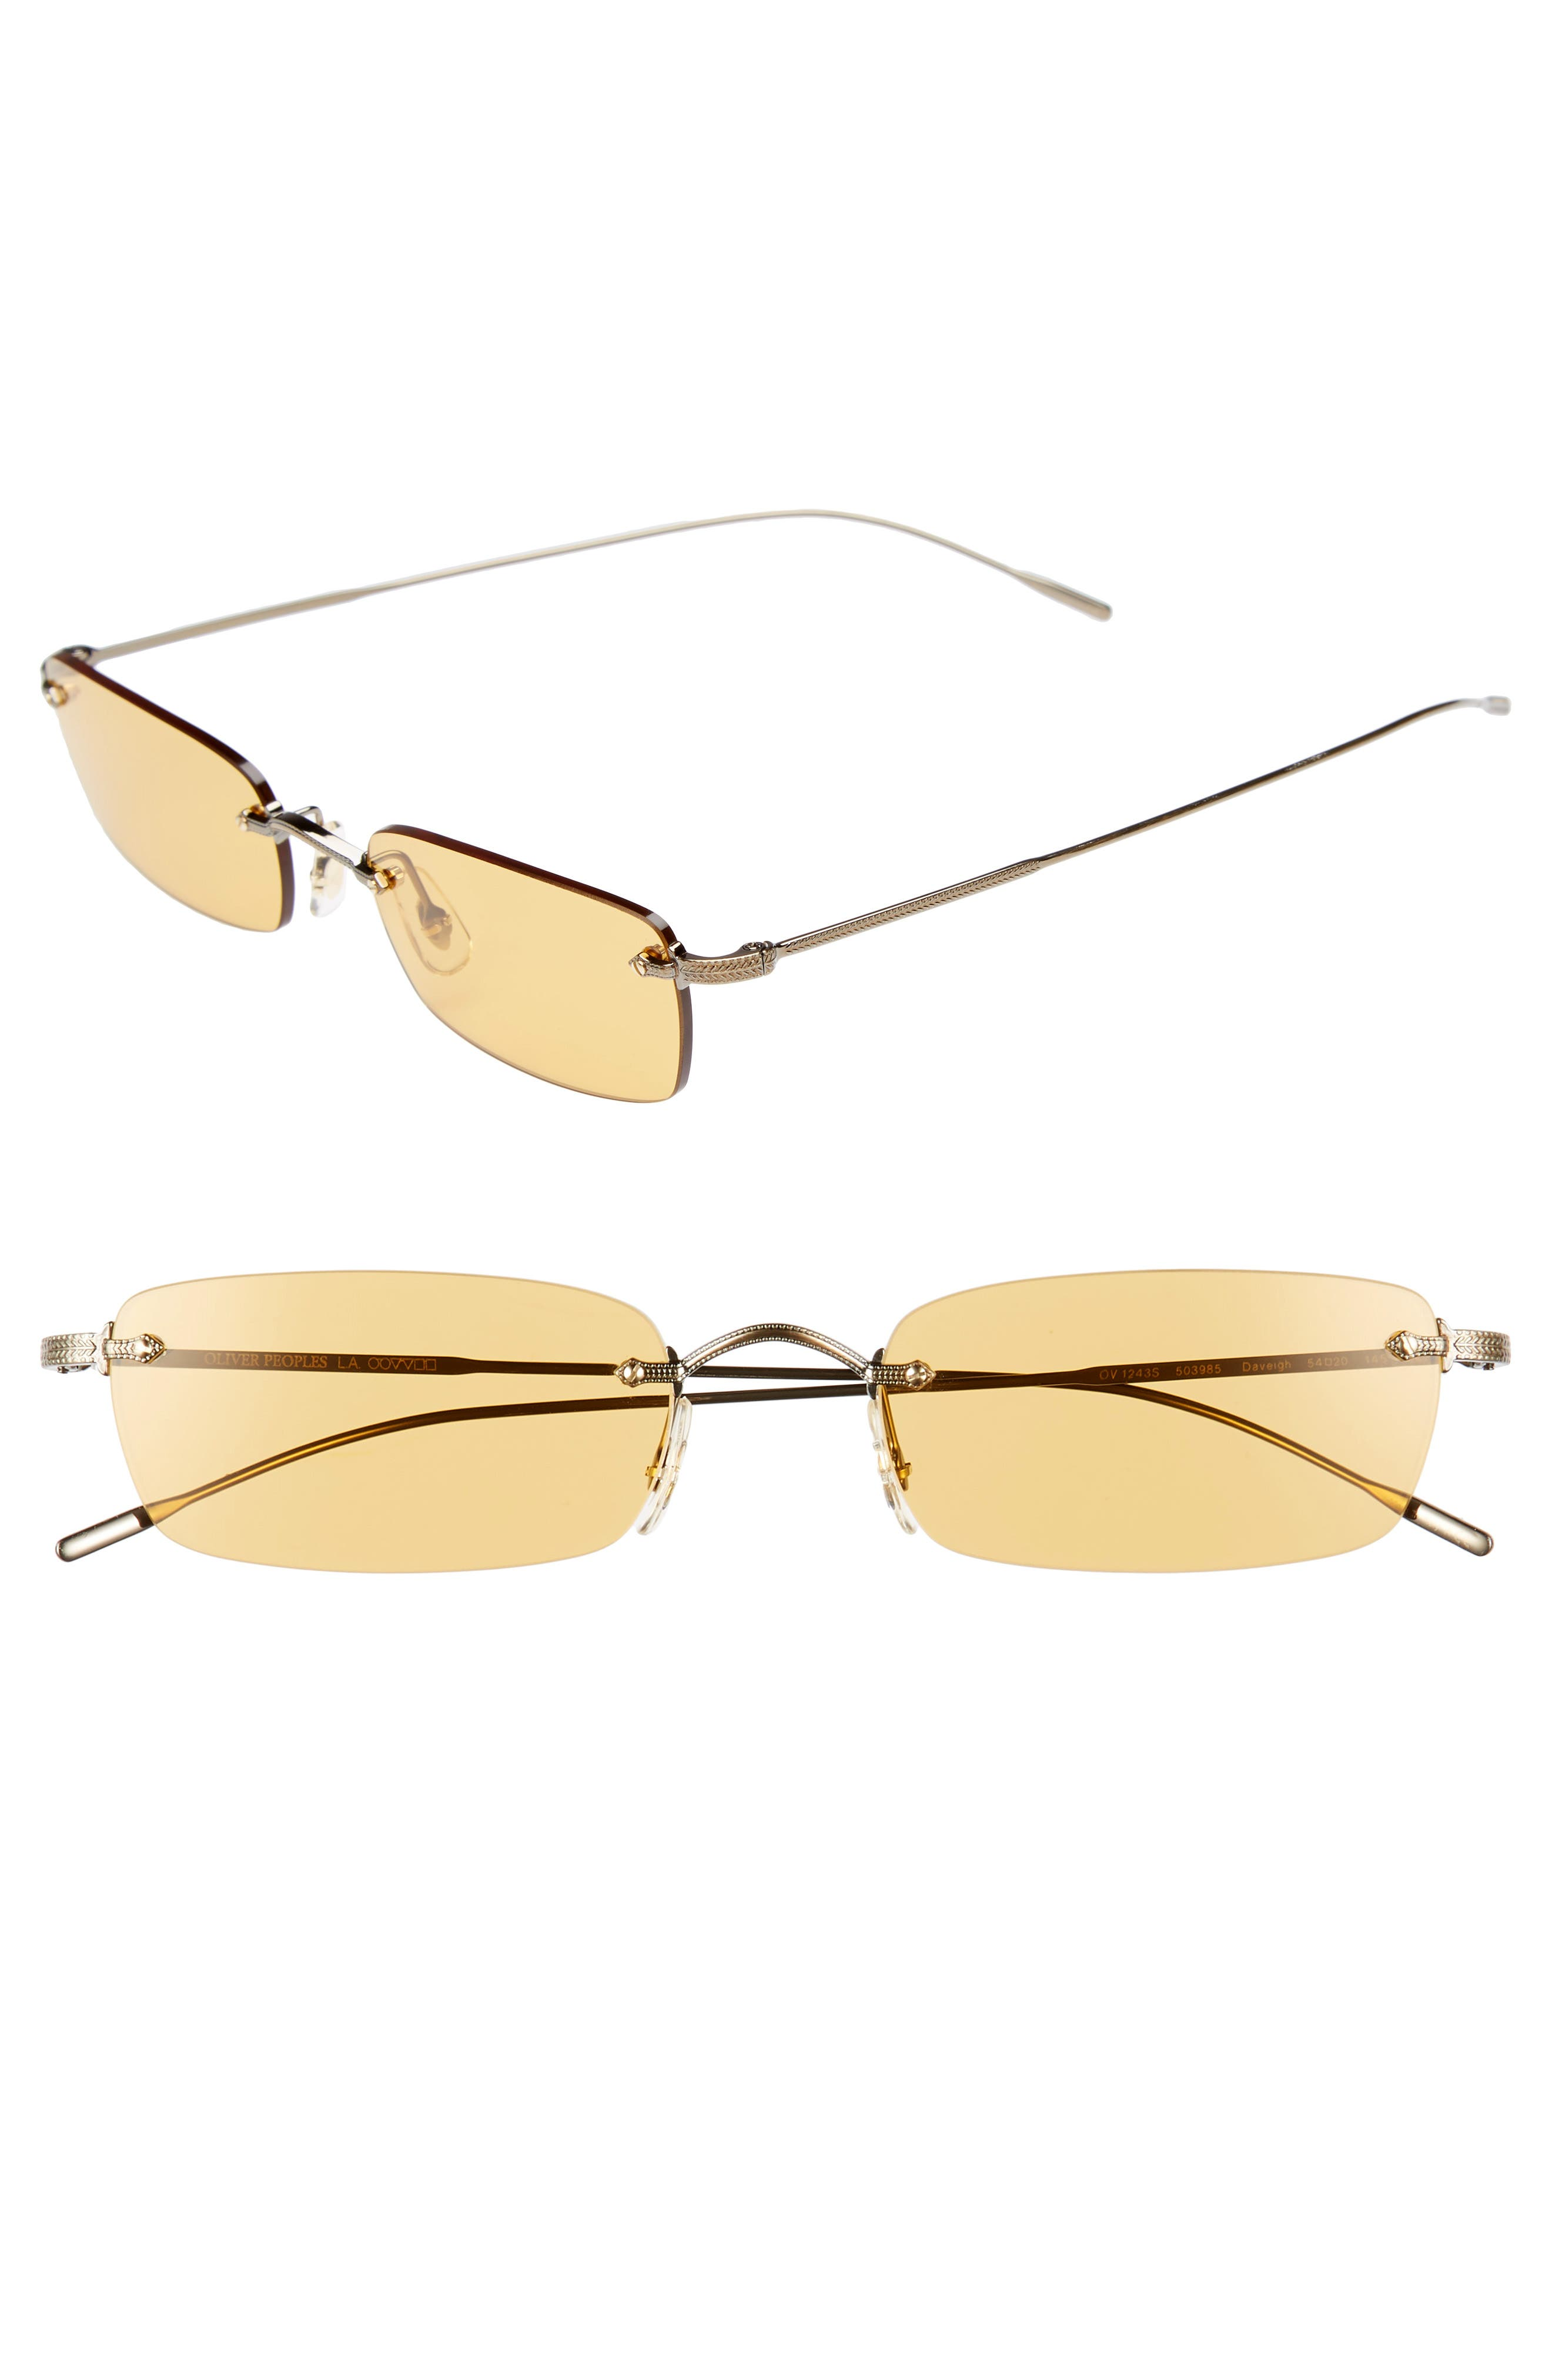 Daveigh 54mm Sunglasses,                         Main,                         color, Mustard